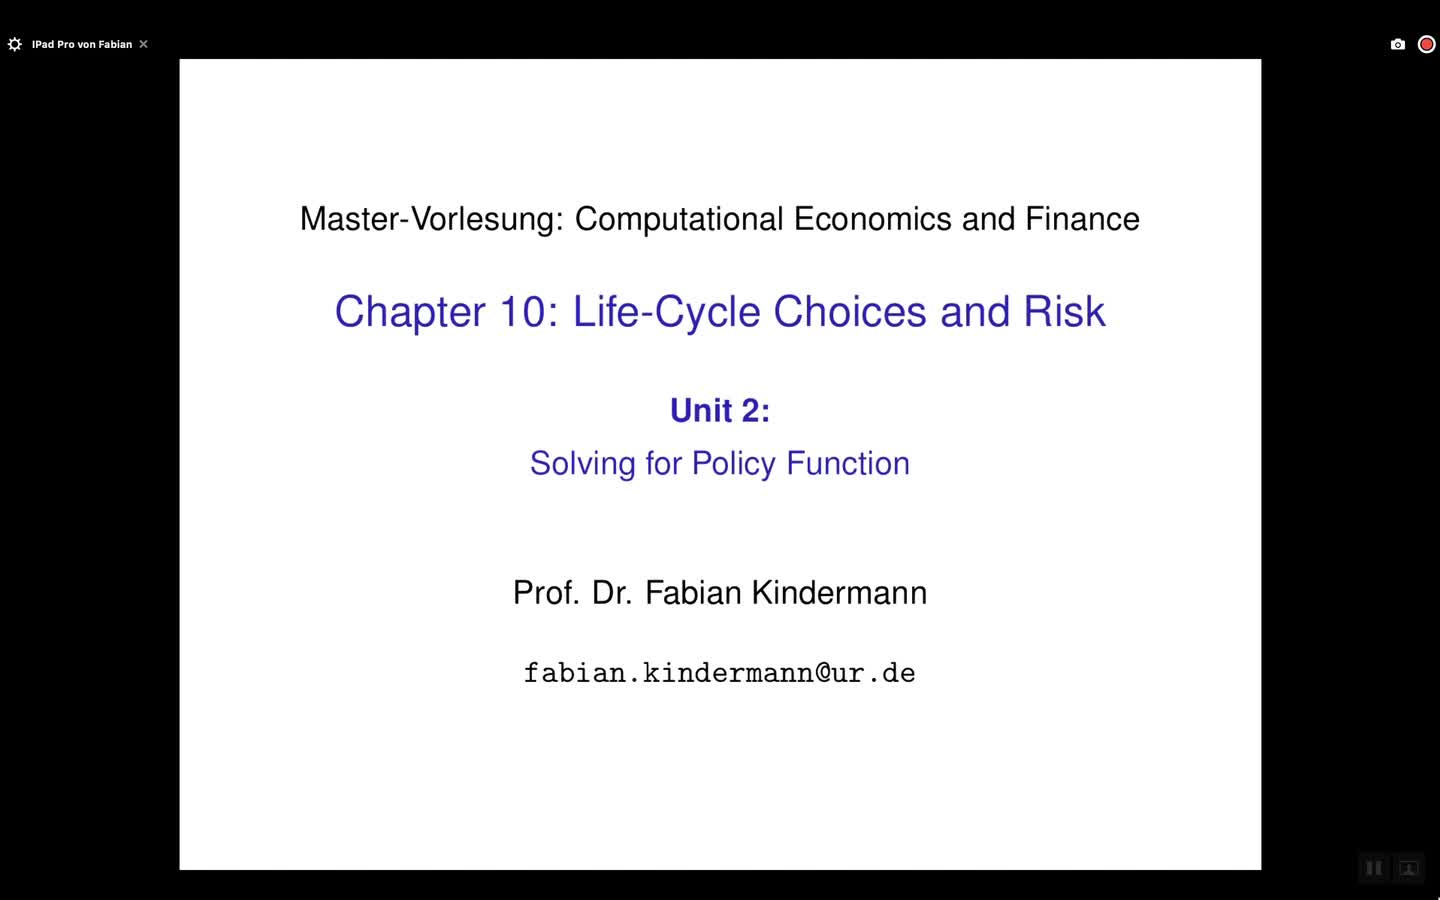 Chapter 10 - Unit 2 - Solving for Policy Functions